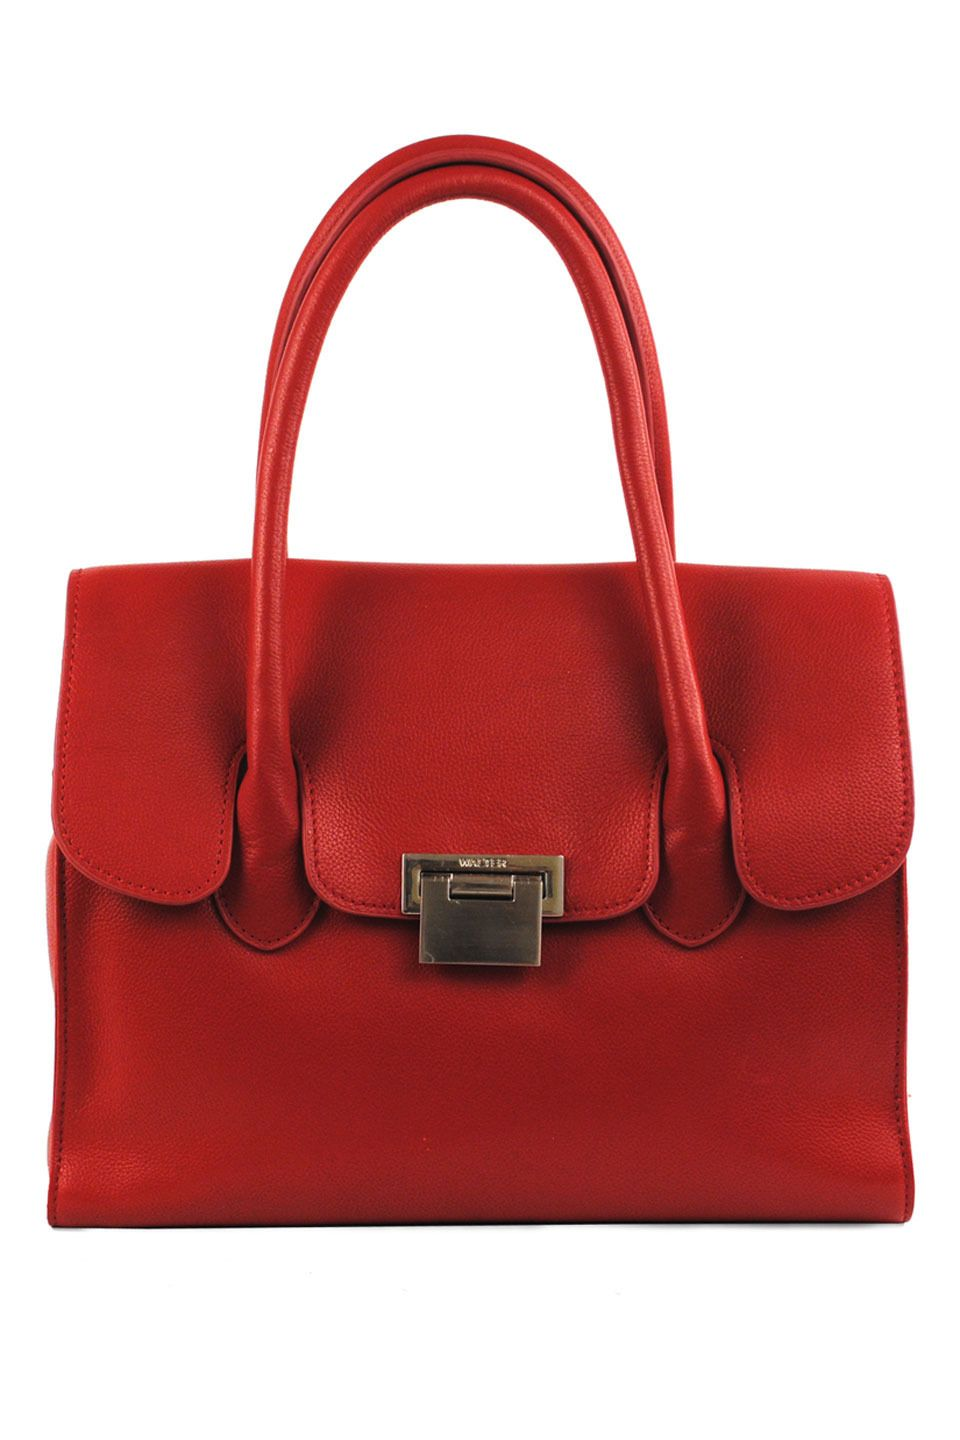 Walter Baker Maranello Tote In Red Haute Couture Handbags Designer